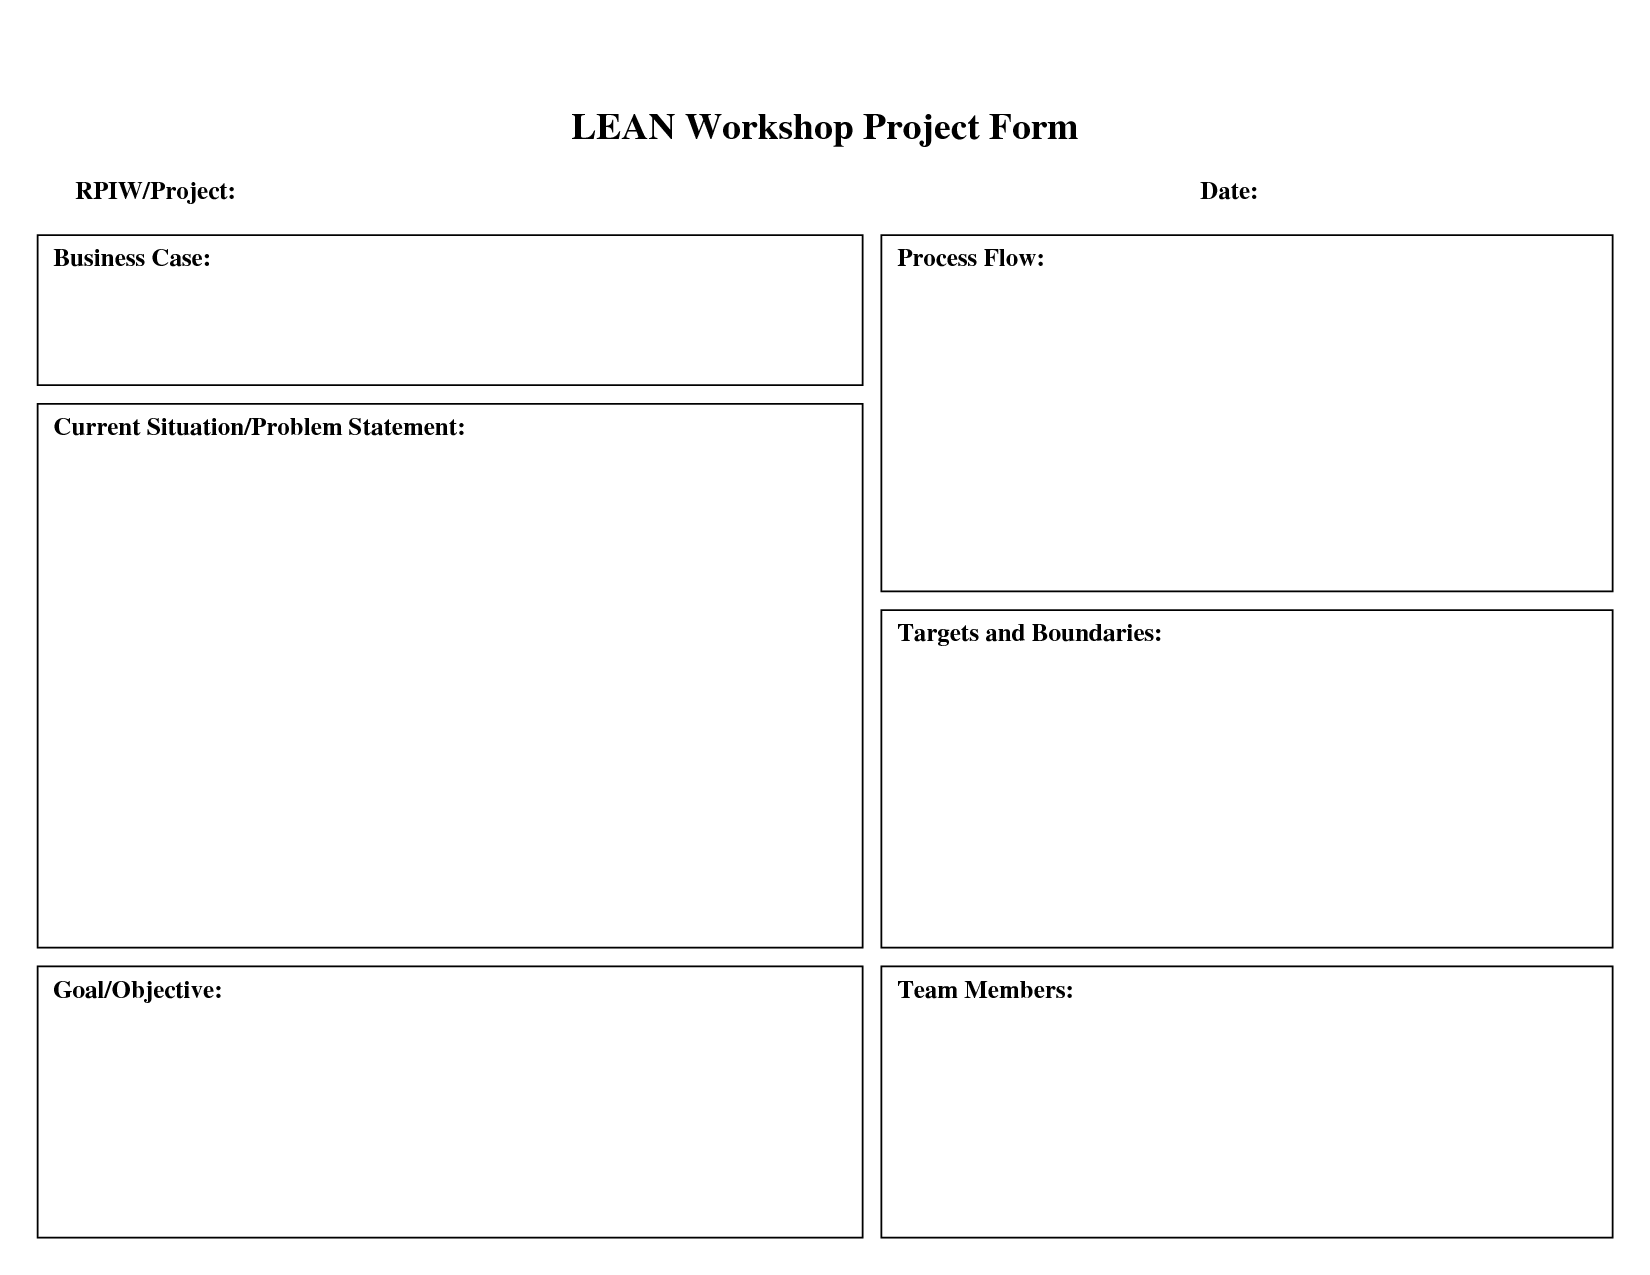 templates Lean - Yahoo Search Results Yahoo-Zoekresultaten | Lean 6 ...